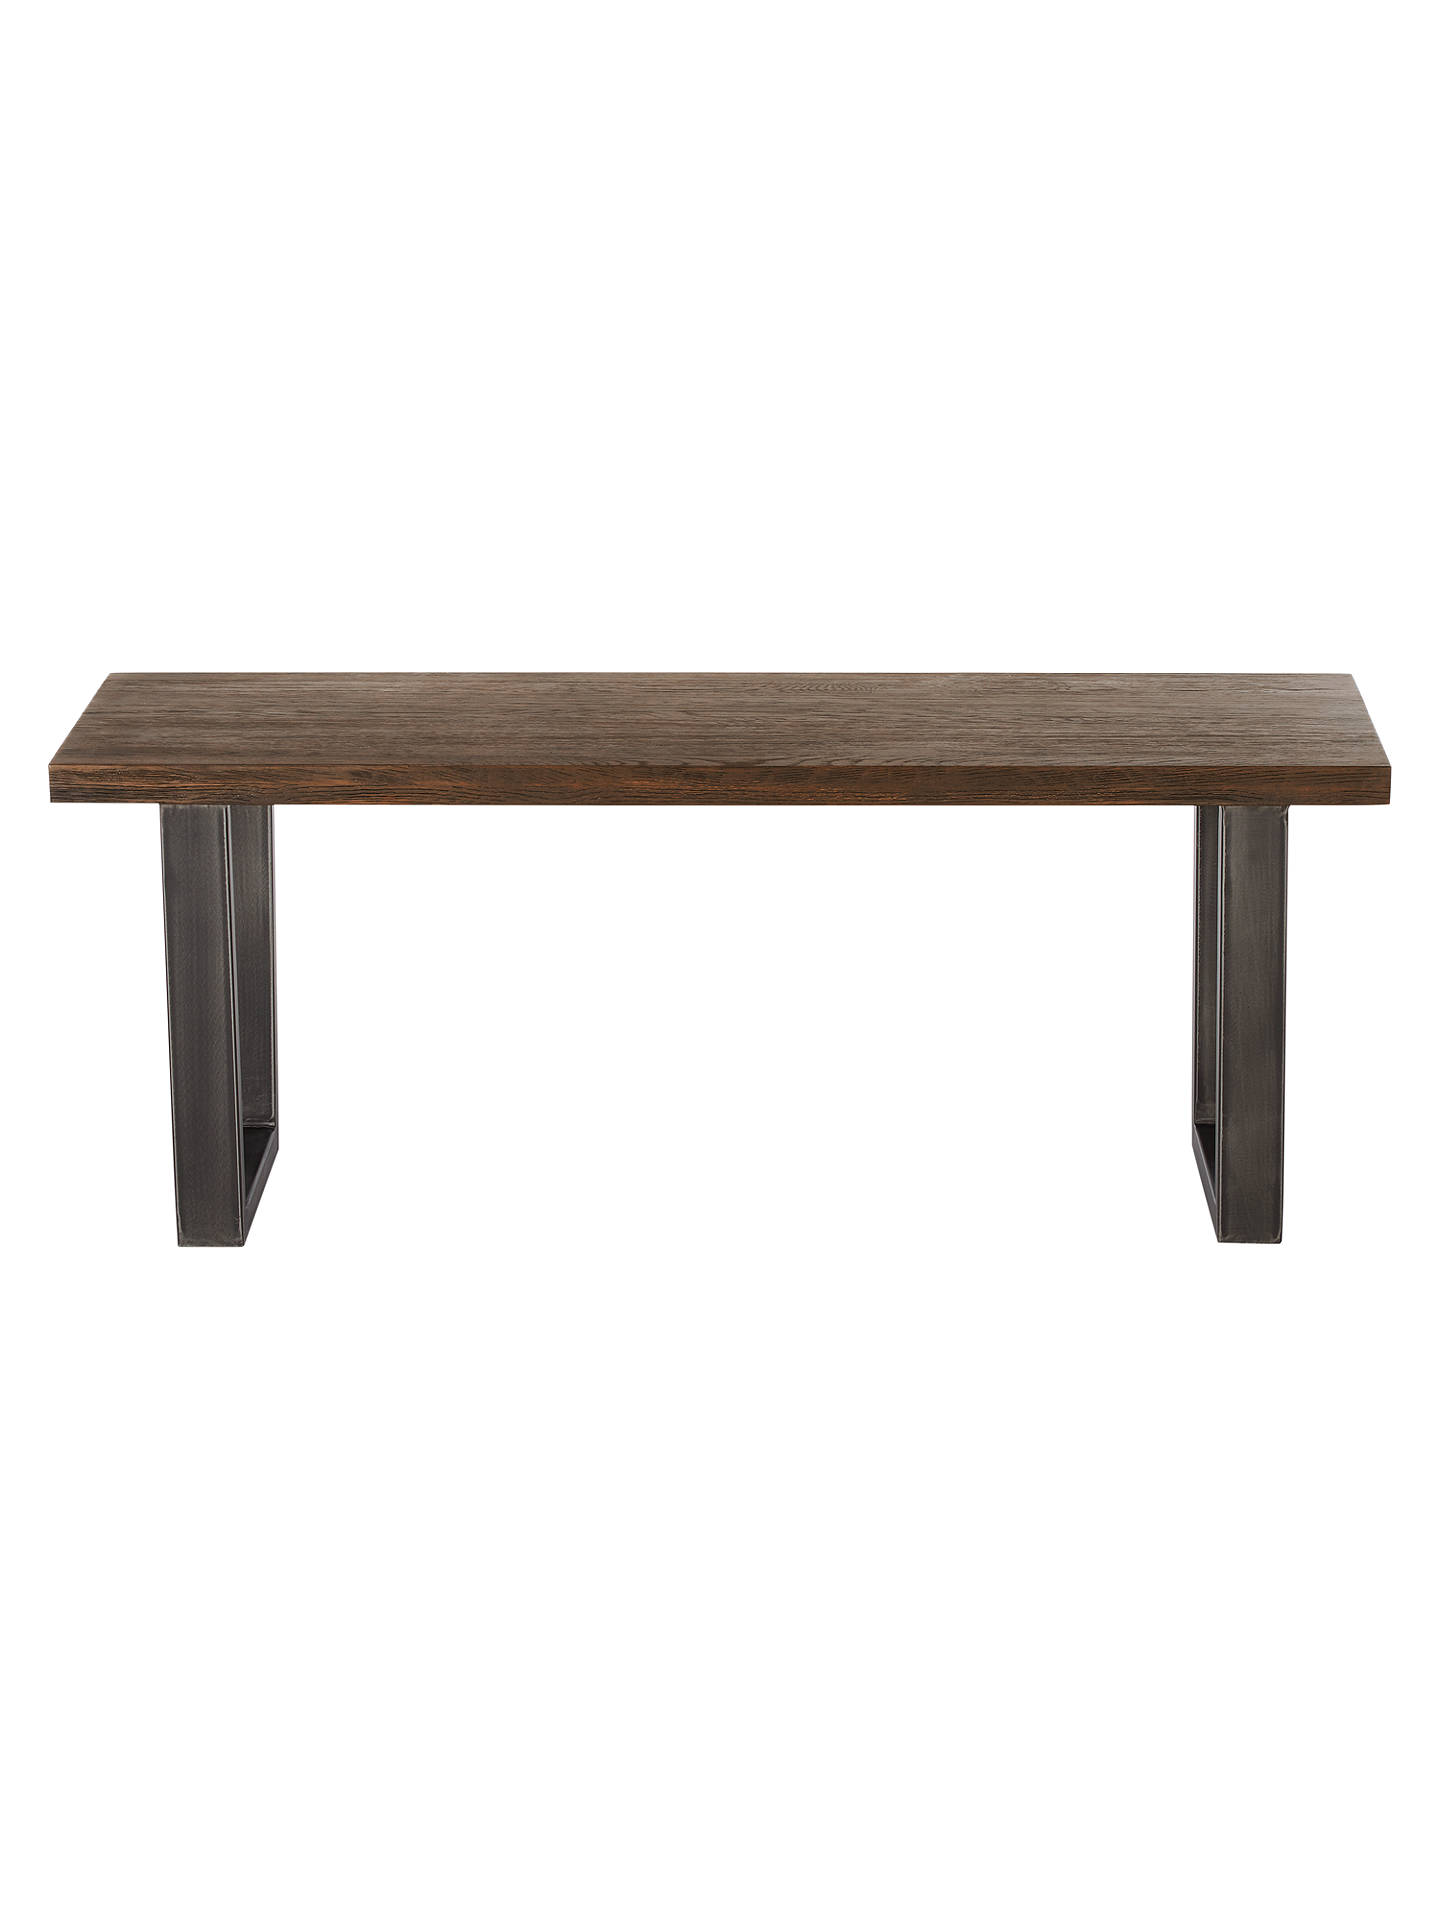 Groovy John Lewis Partners Calia 2 Seater Dining Bench Dark Andrewgaddart Wooden Chair Designs For Living Room Andrewgaddartcom